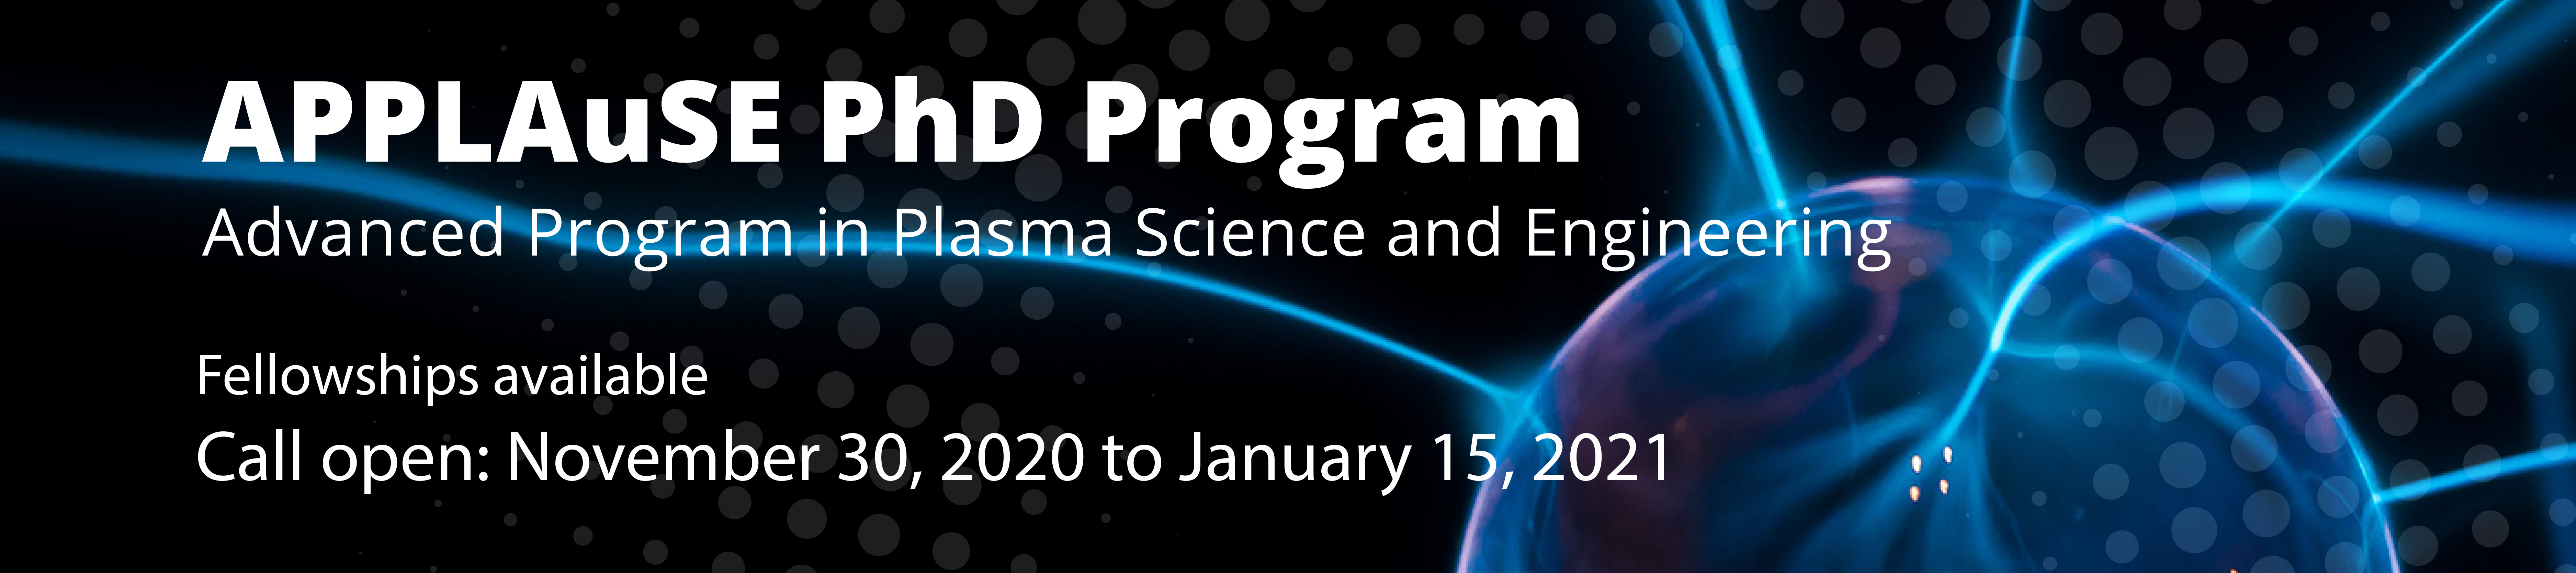 PhD Advanced Program in Plasma Science and Engineering - Call for applications in November 2020